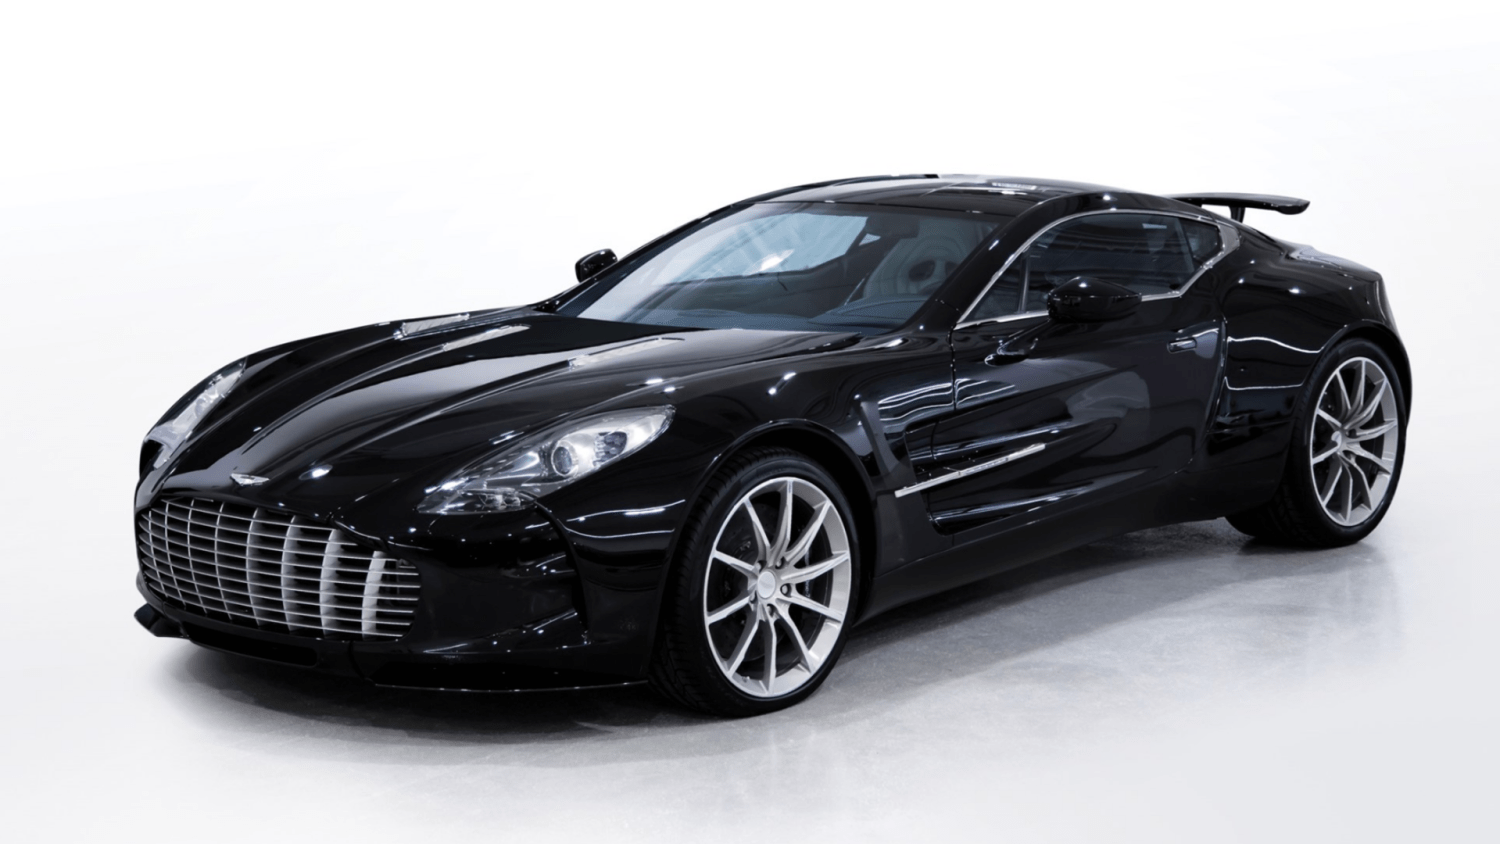 Aston Martin One-77 For Sale >> 2 Million Aston Martin Hypercar To Be Auctioned For Charity